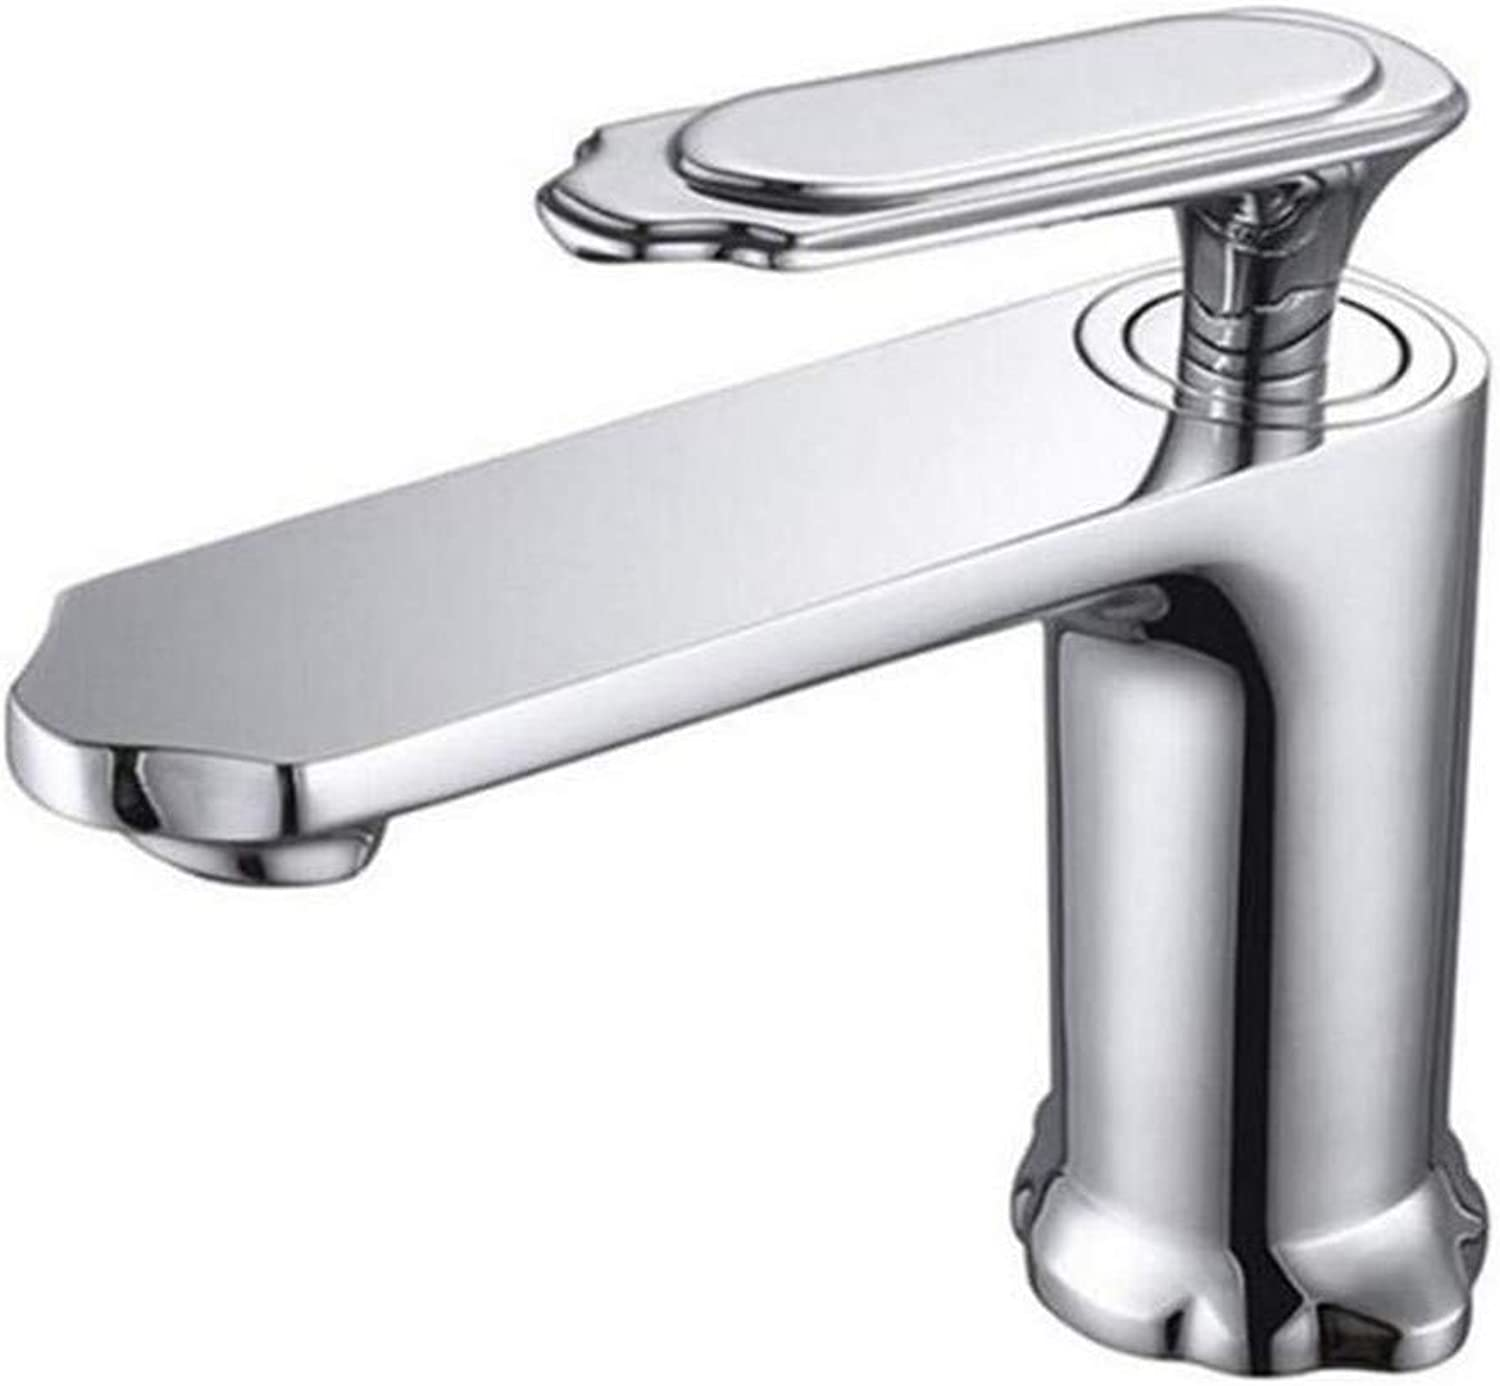 Faucet Luxury Plated Modern Faucet Faucet Washbasin Mixer Brass Unique Design Hot and Cold Single Lever Basin Faucet